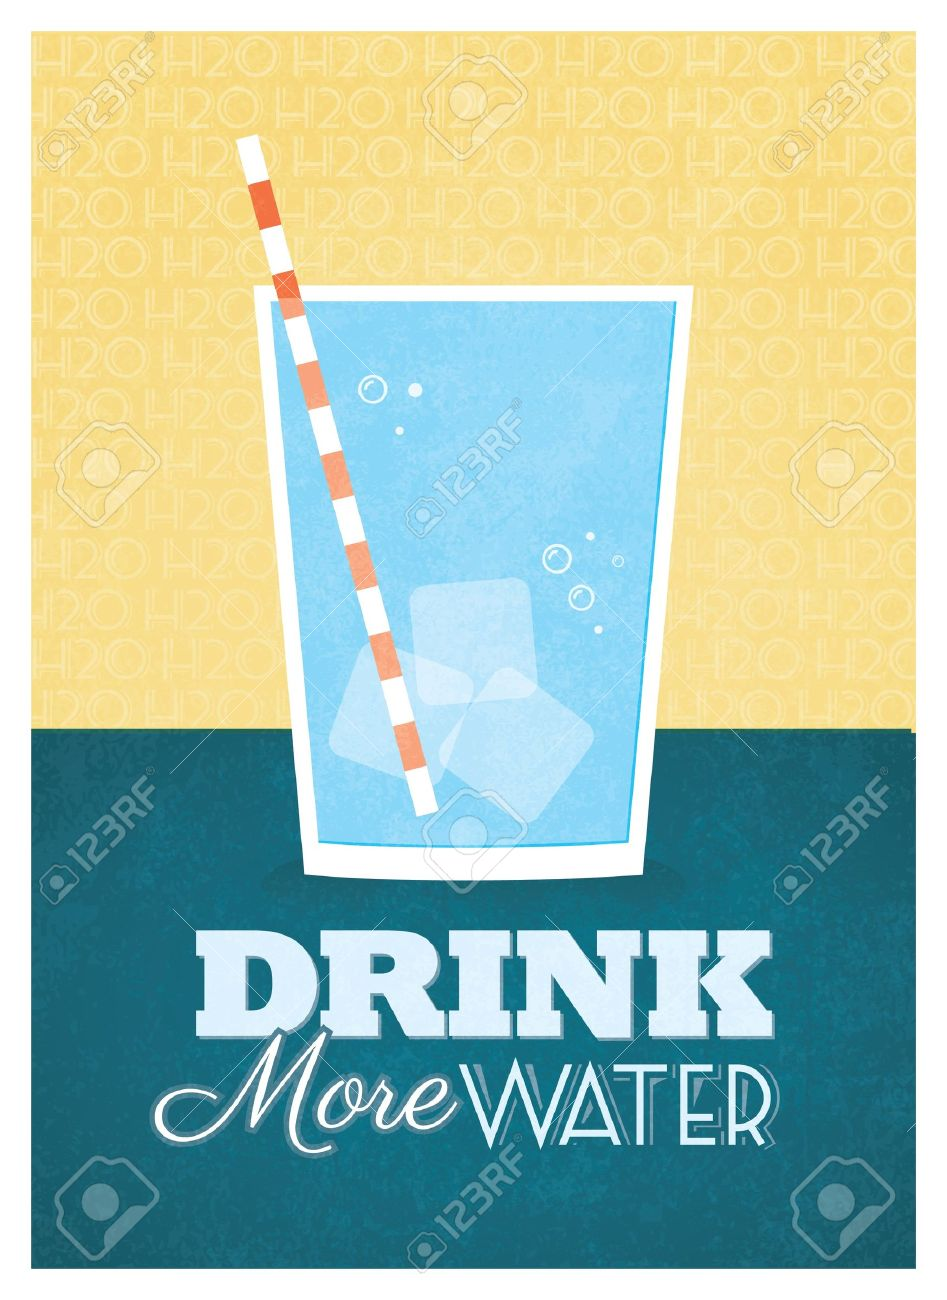 Graphic design poster quotes - Drink More Water Poster Design Stock Vector 20893583